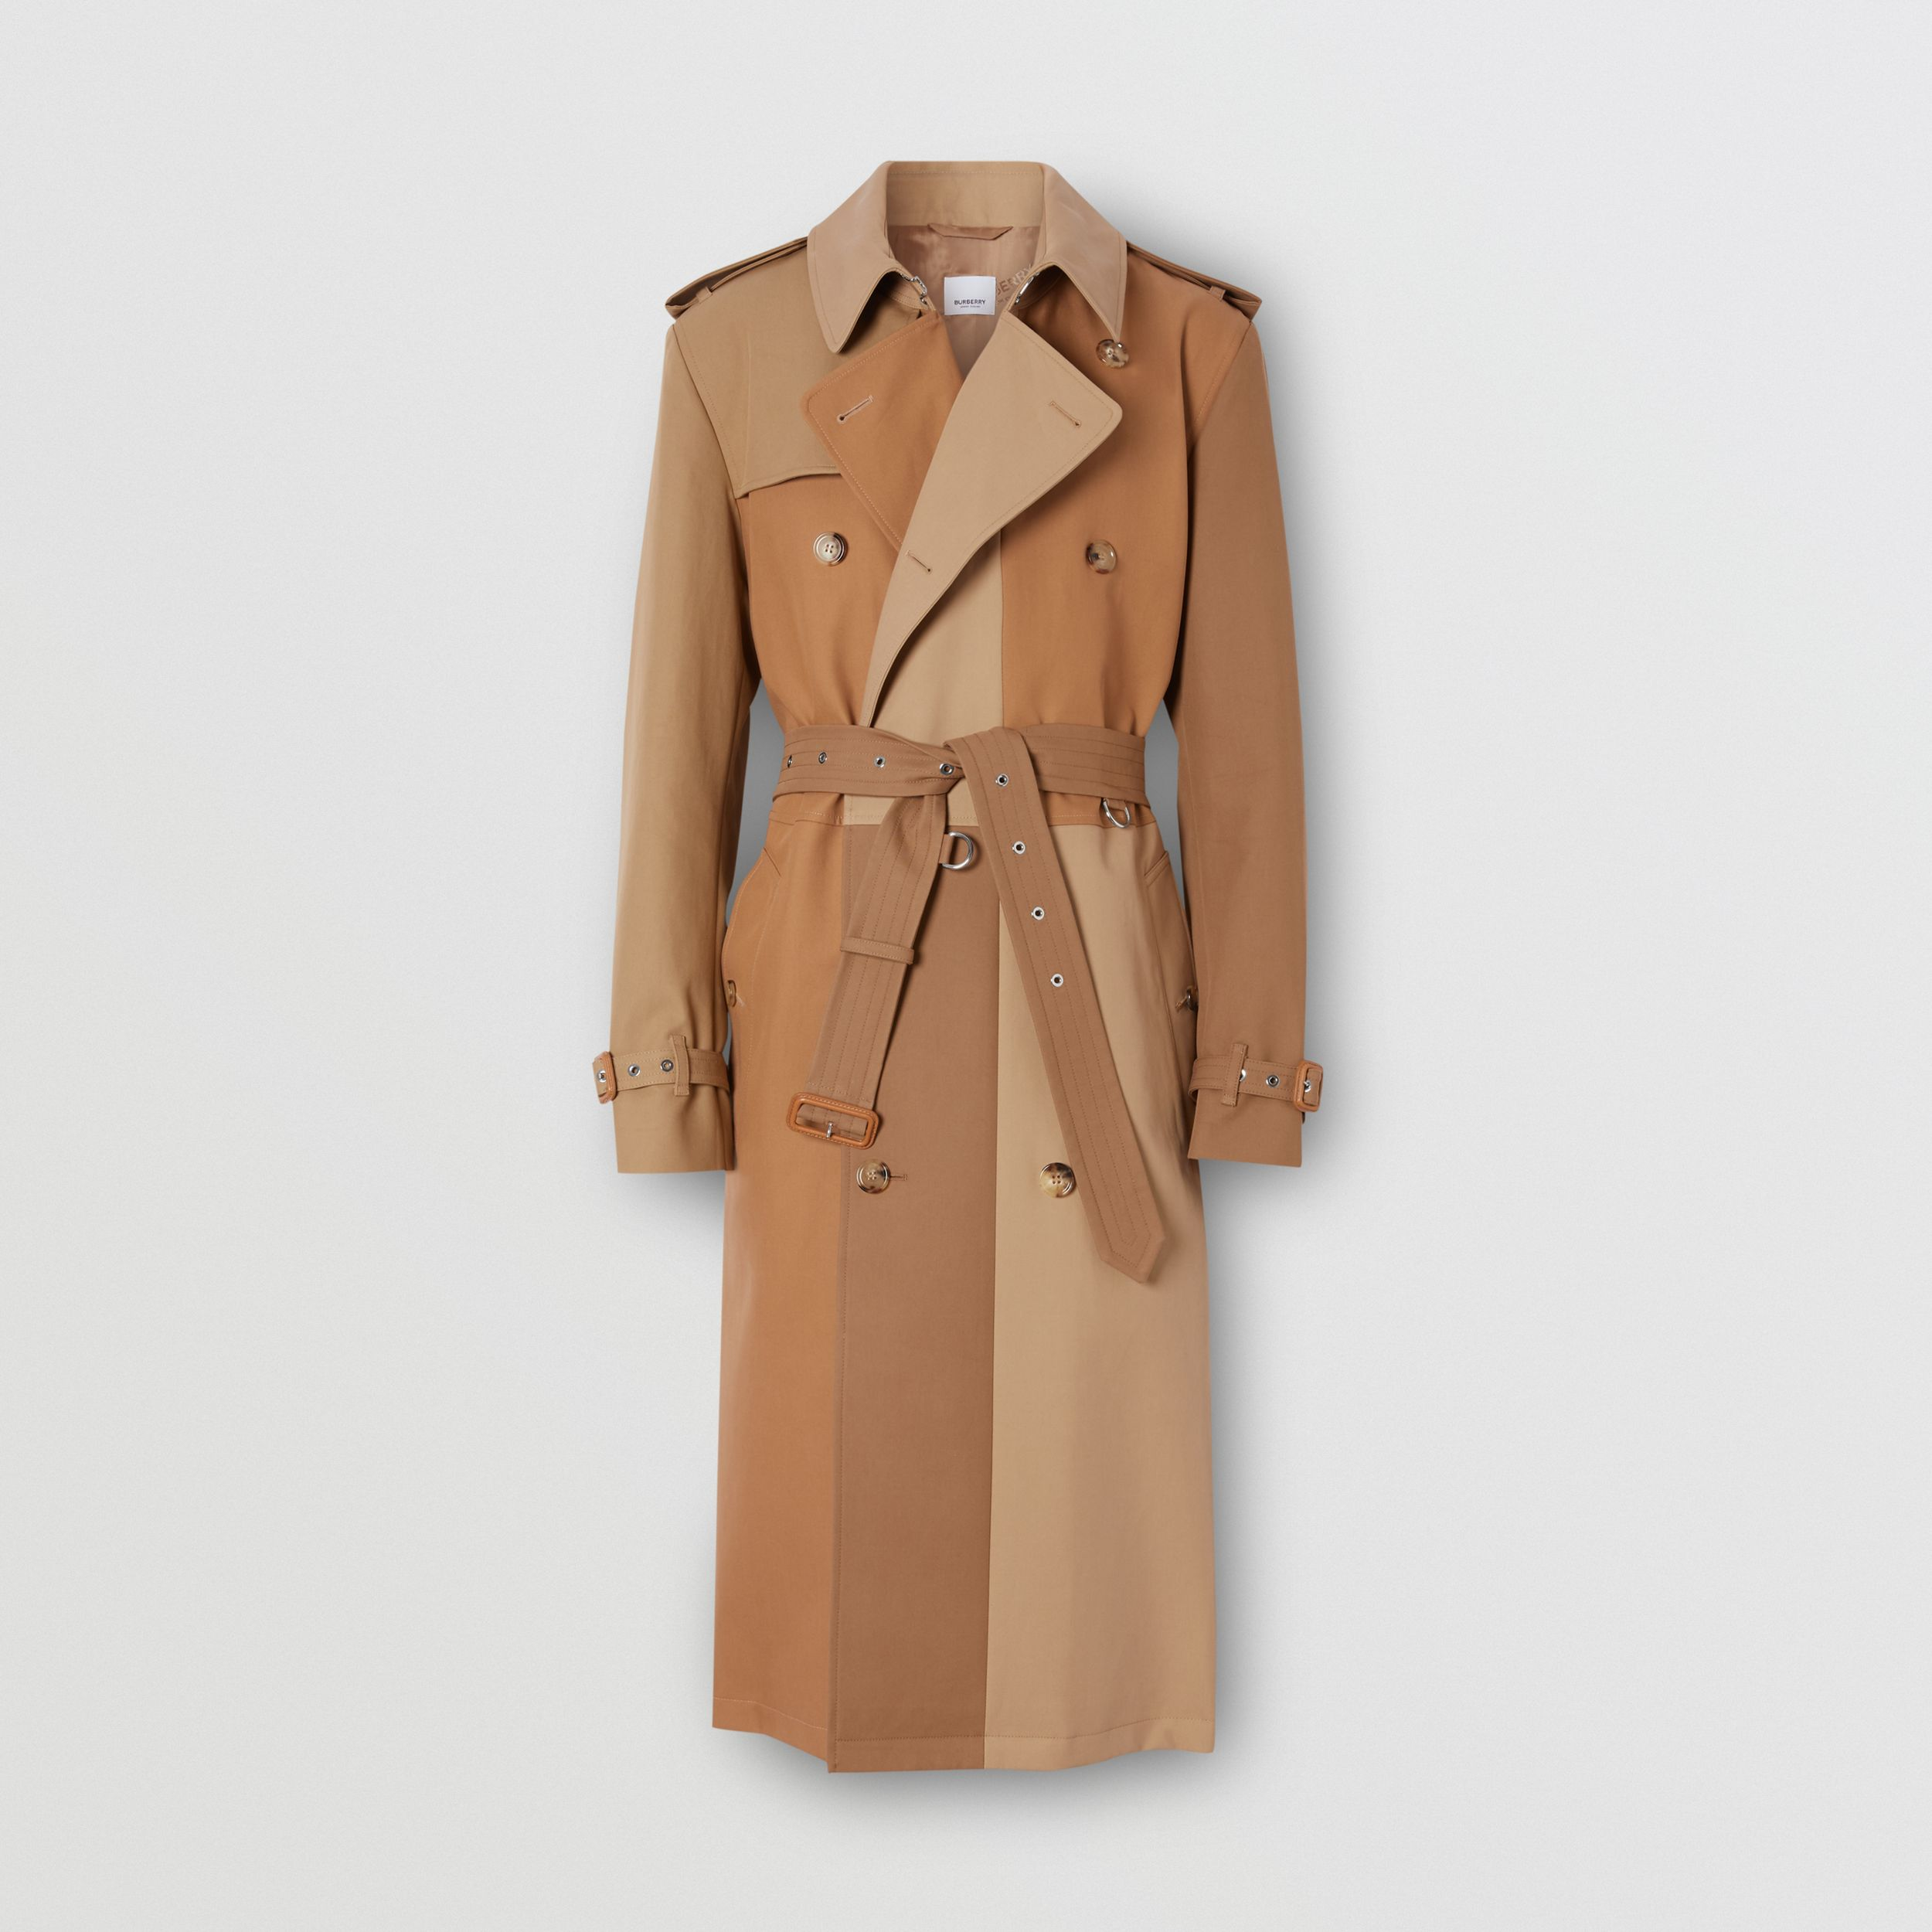 Panelled Cotton Trench Coat in Warm Camel - Men | Burberry - 4